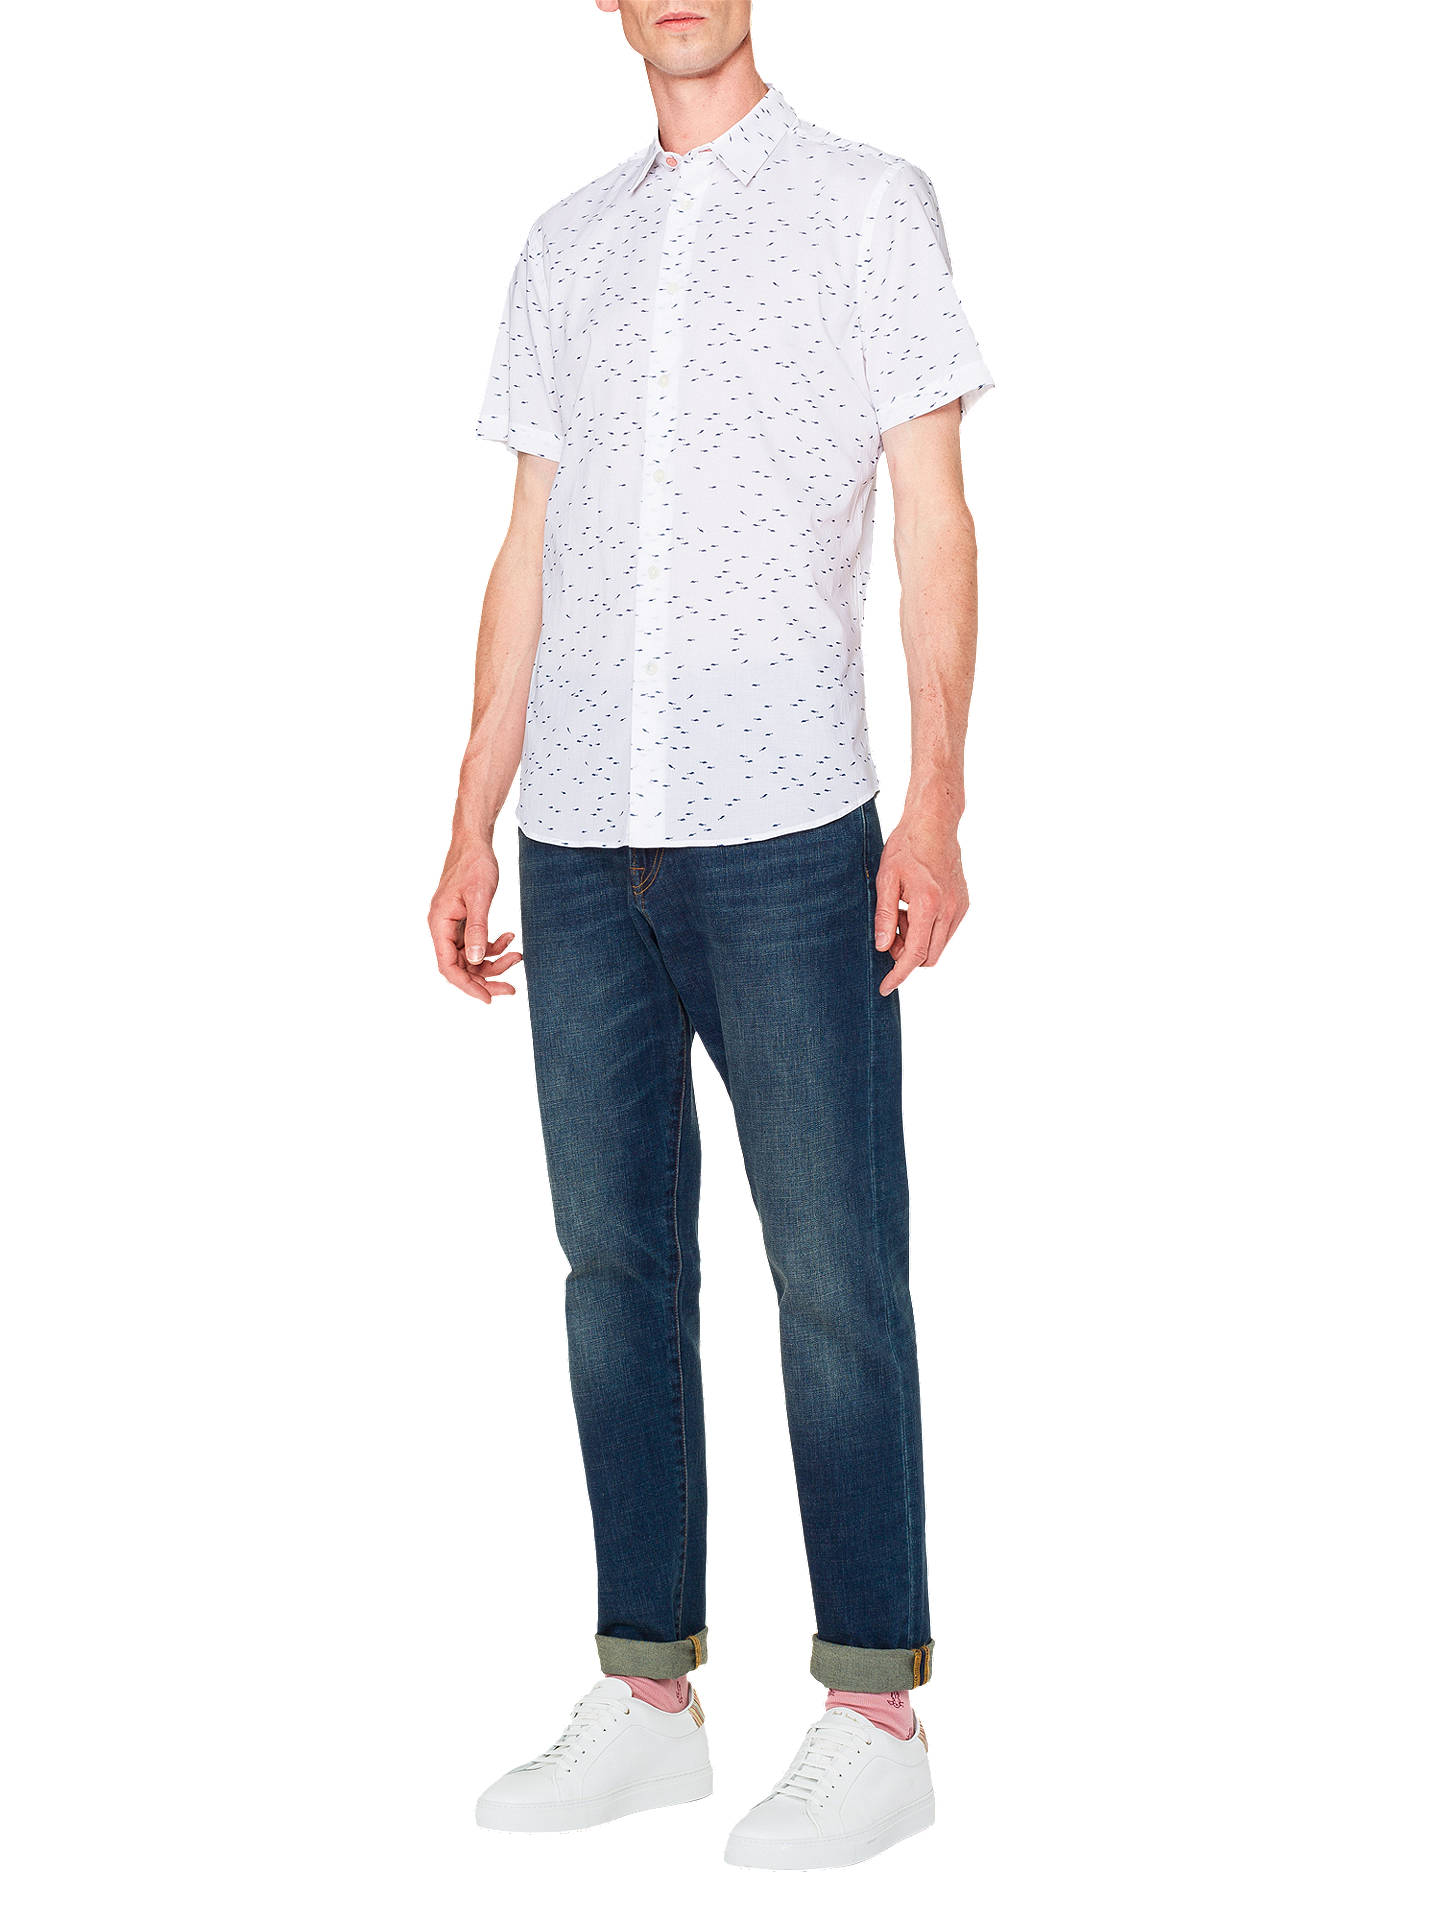 Buy PS Paul Smith Short Sleeve Fish Print Shirt, White, XL Online at johnlewis.com